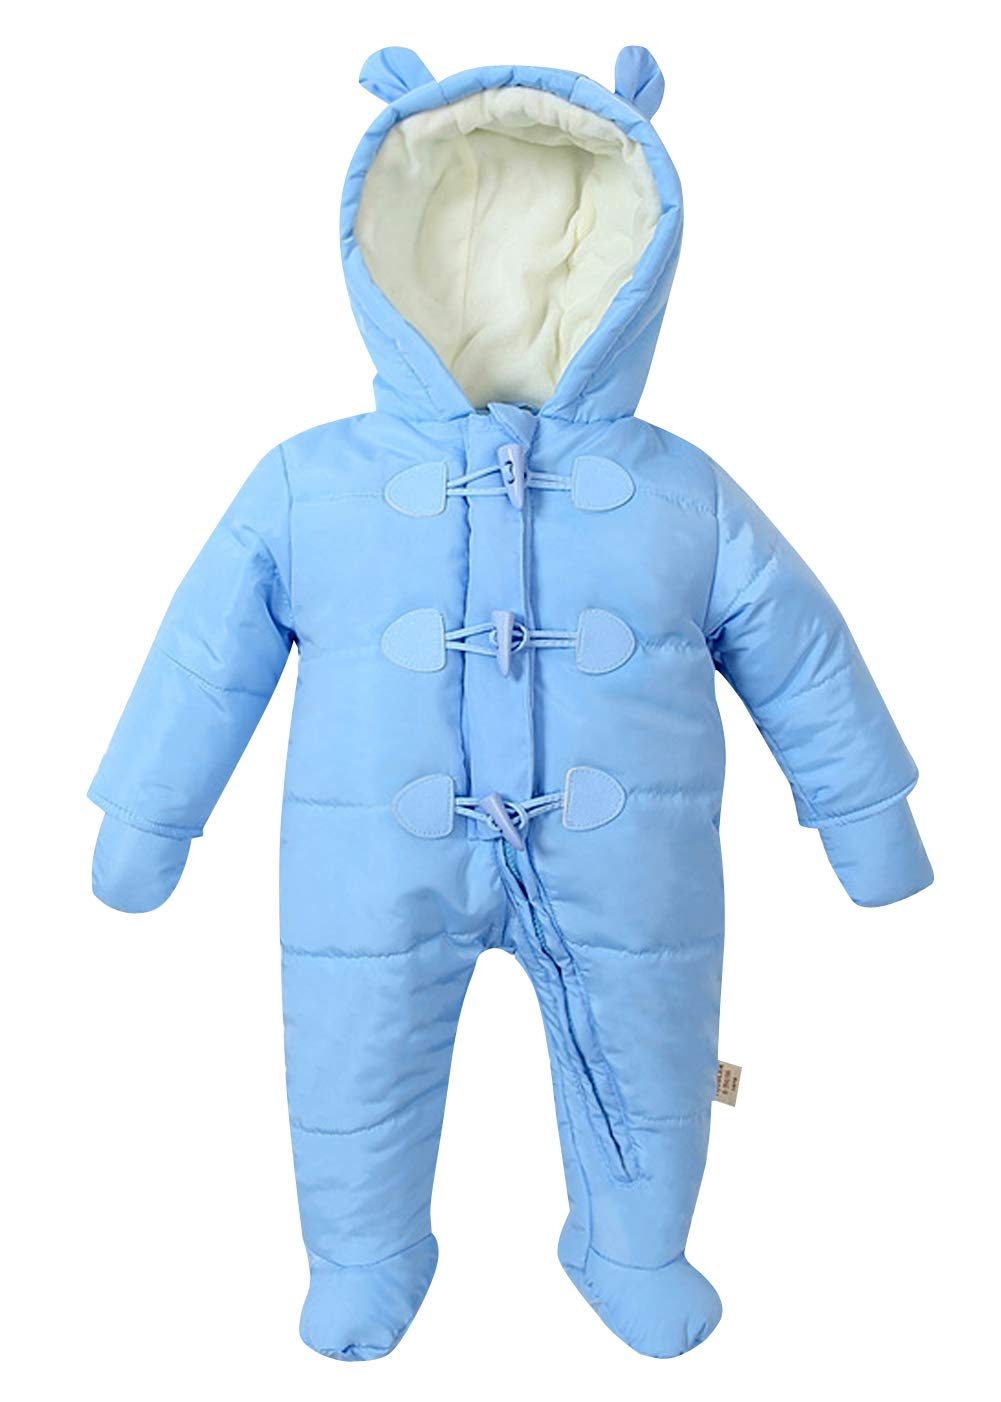 Boys Snowsuit Hooded and Long Sleeve Casual Homewear Toddlers Outfits without Shoes - Blue HAPPY CHERRY